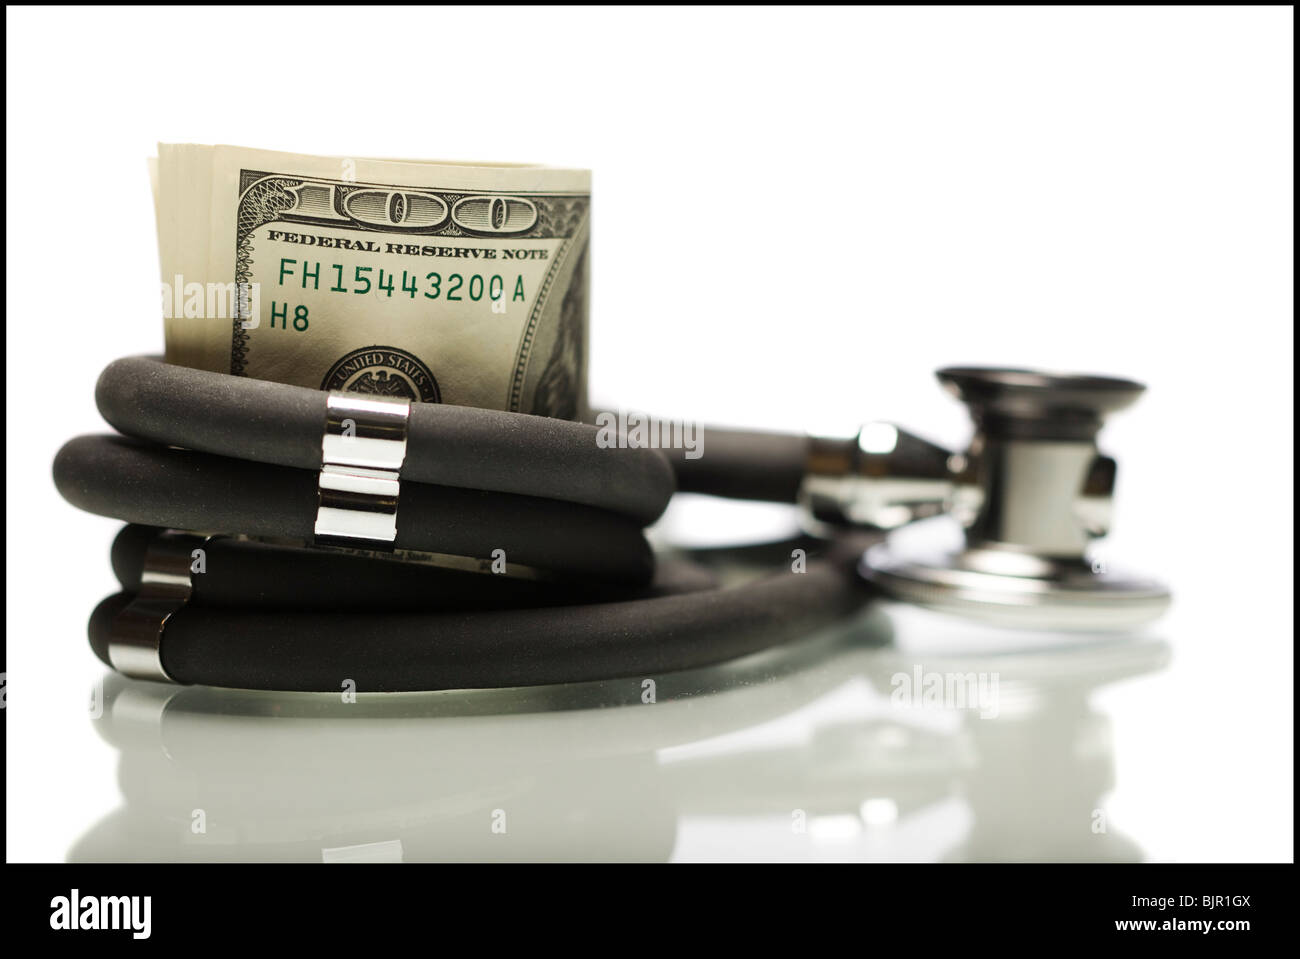 Money wrapped in a stethoscope. - Stock Image